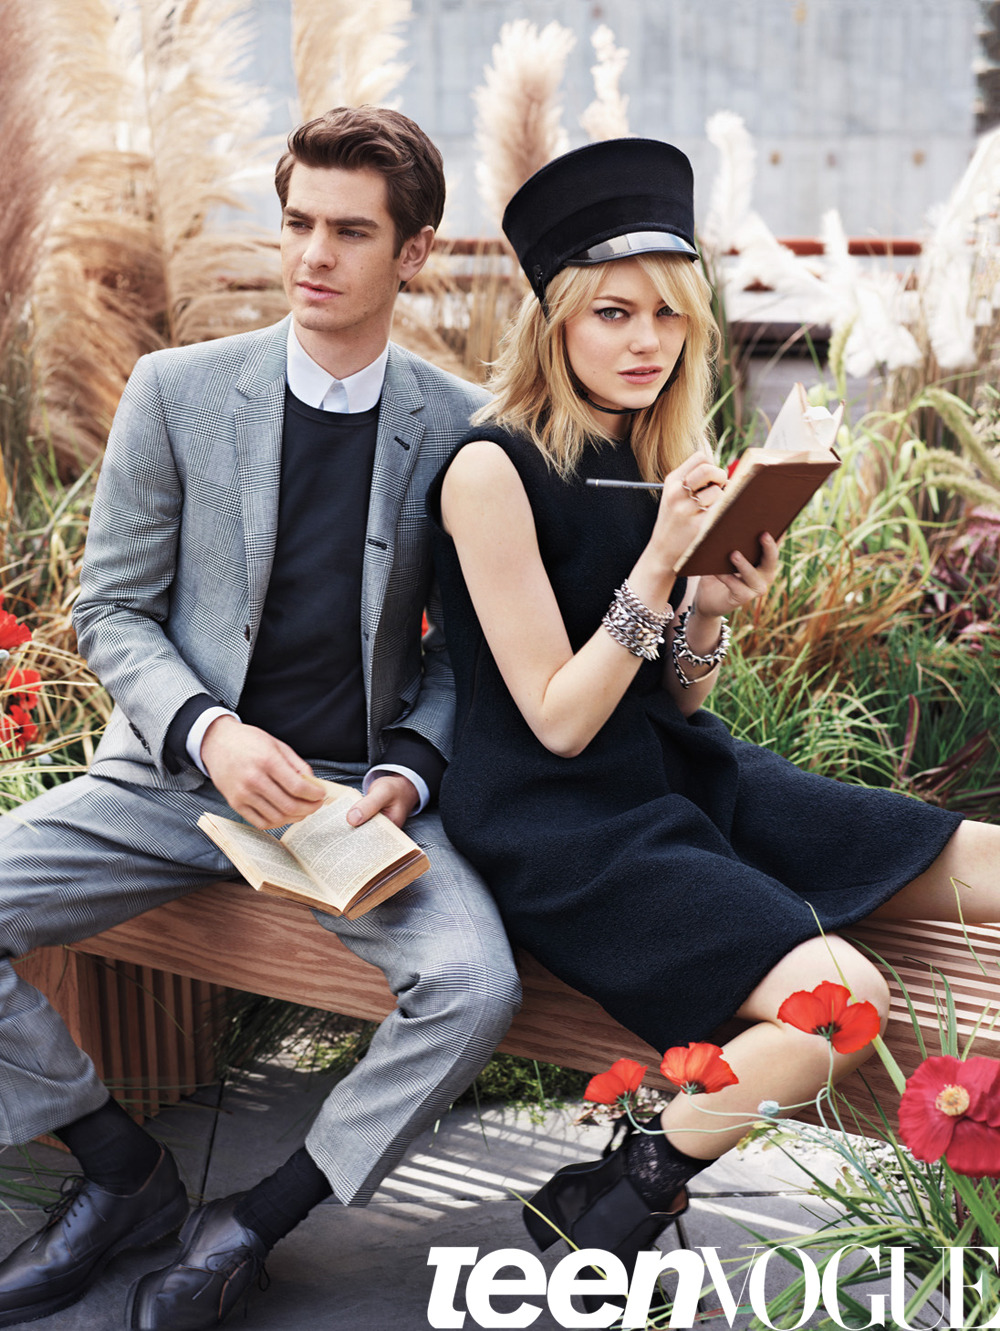 "teenvogue:  August cover stars Emma Stone and Andrew Garfield talk about filming The Amazing Spider Man, Emma's least favorite interview question and Andrew's unlikely ""man crush."" Read the full story from our August issue »"